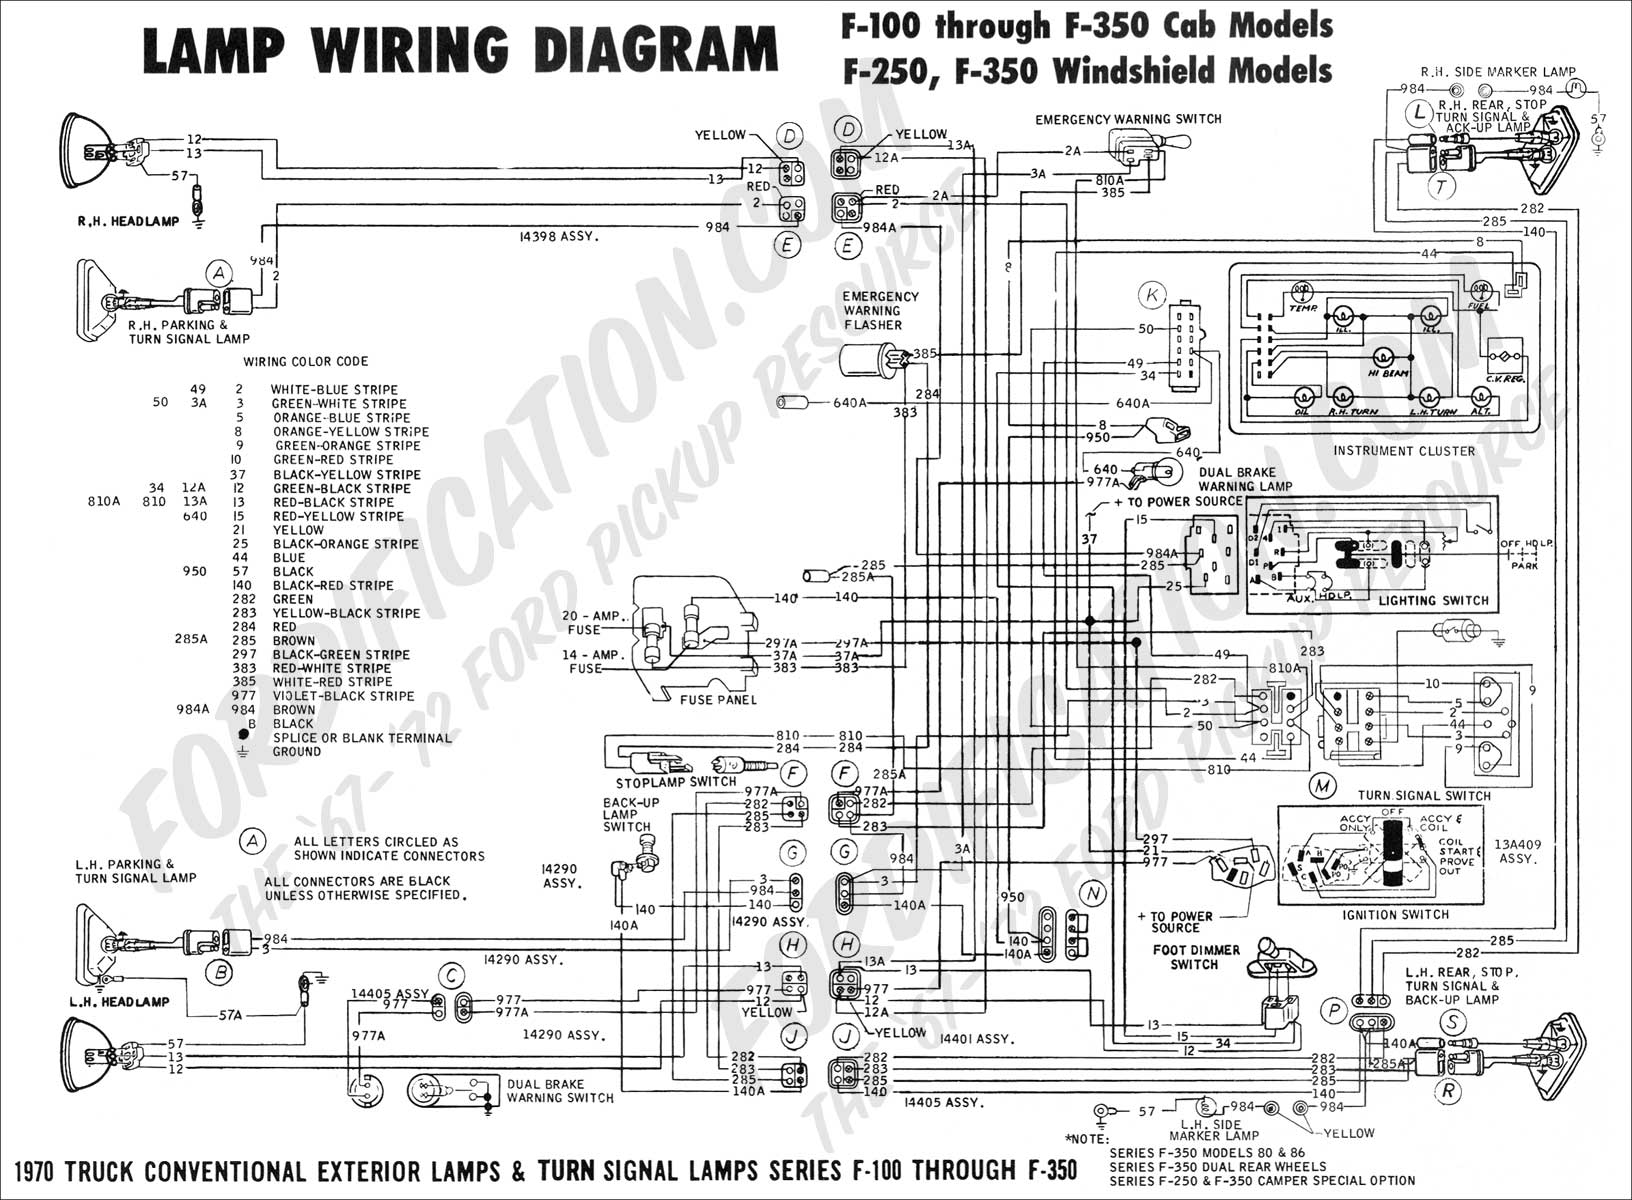 wiring diagram_70ext lights01?resize=665%2C489 ford f150 right rear taillight is out where is fuse and how 1999 ford f150 turn signal wiring diagram at gsmx.co